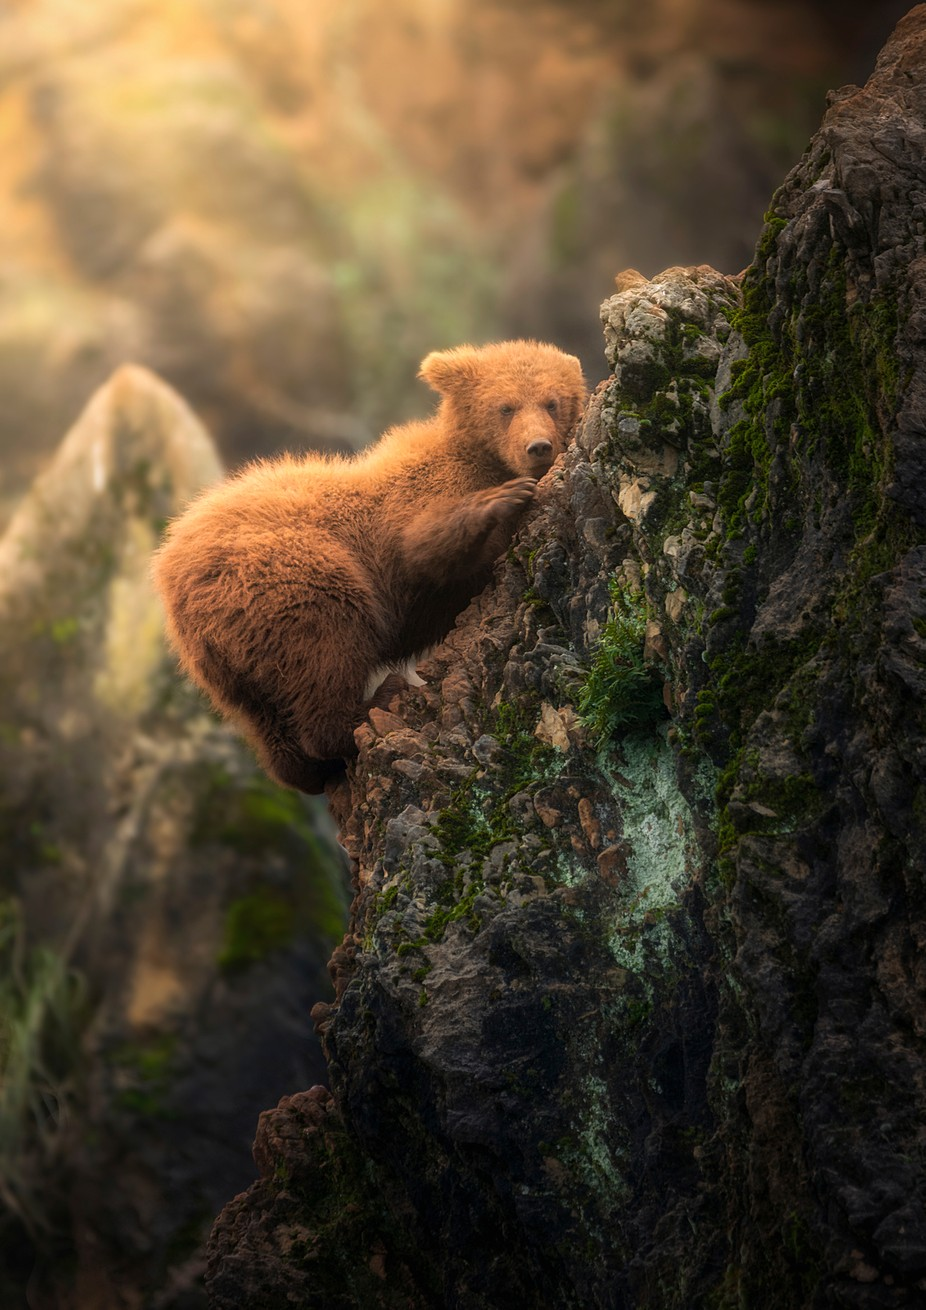 The climber bear by Sergio_Saavedra - Bears Photo Contest